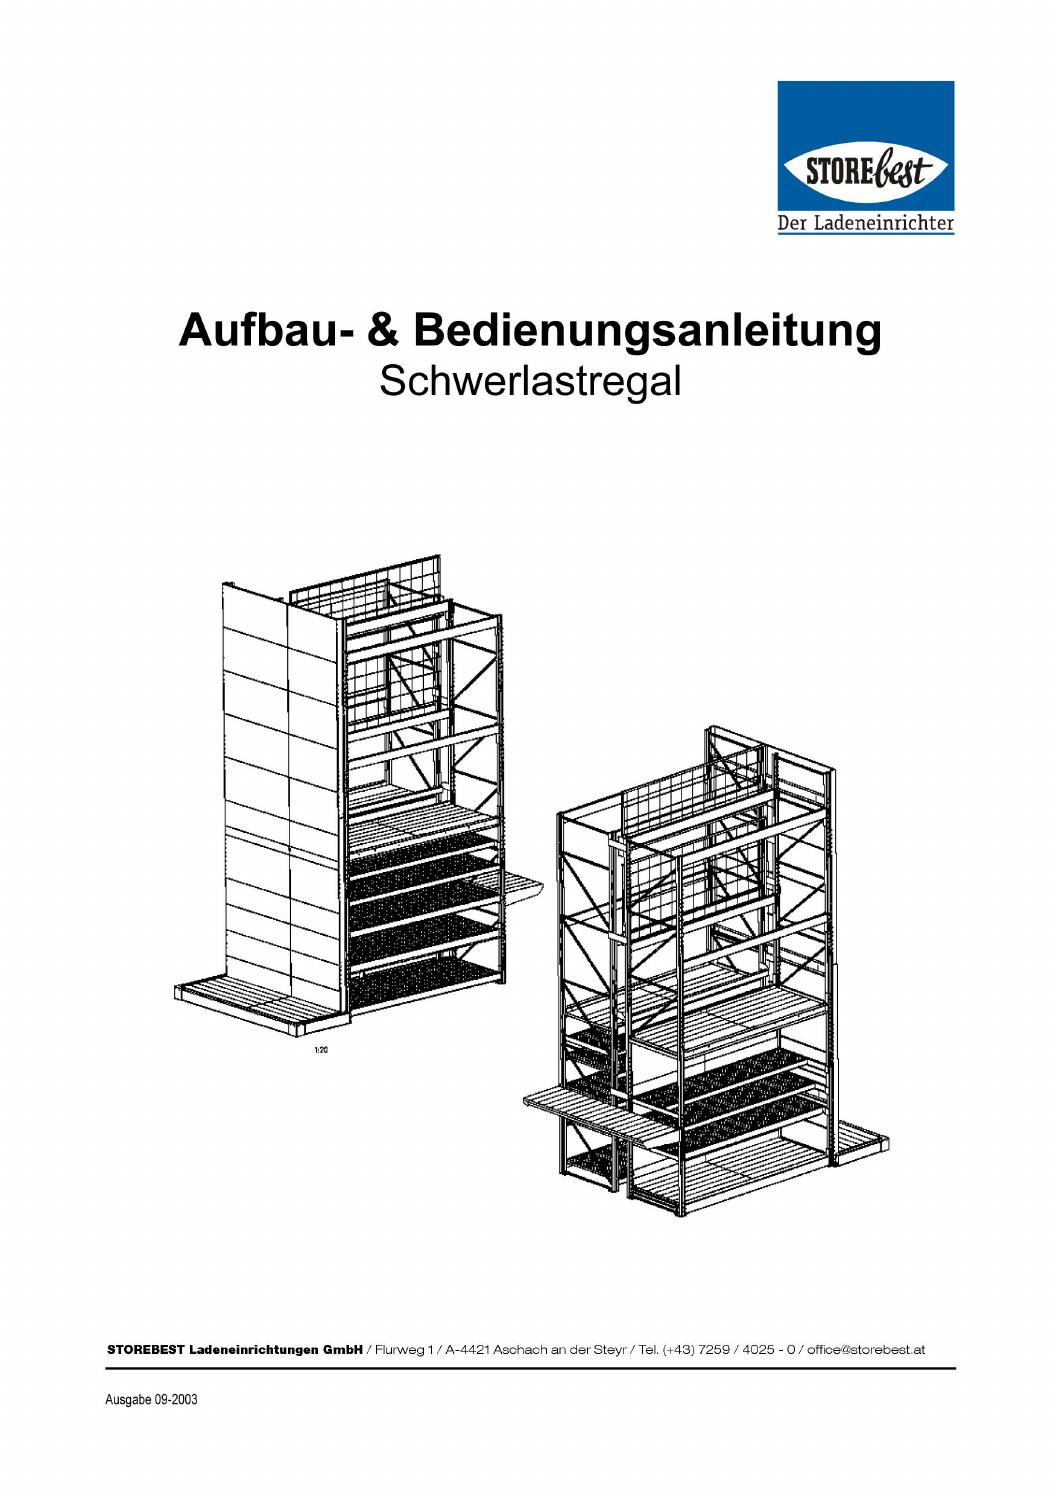 montageanleitung storebest schwerlastregal slr by storebest ladeneinrichtungen gmbh issuu. Black Bedroom Furniture Sets. Home Design Ideas